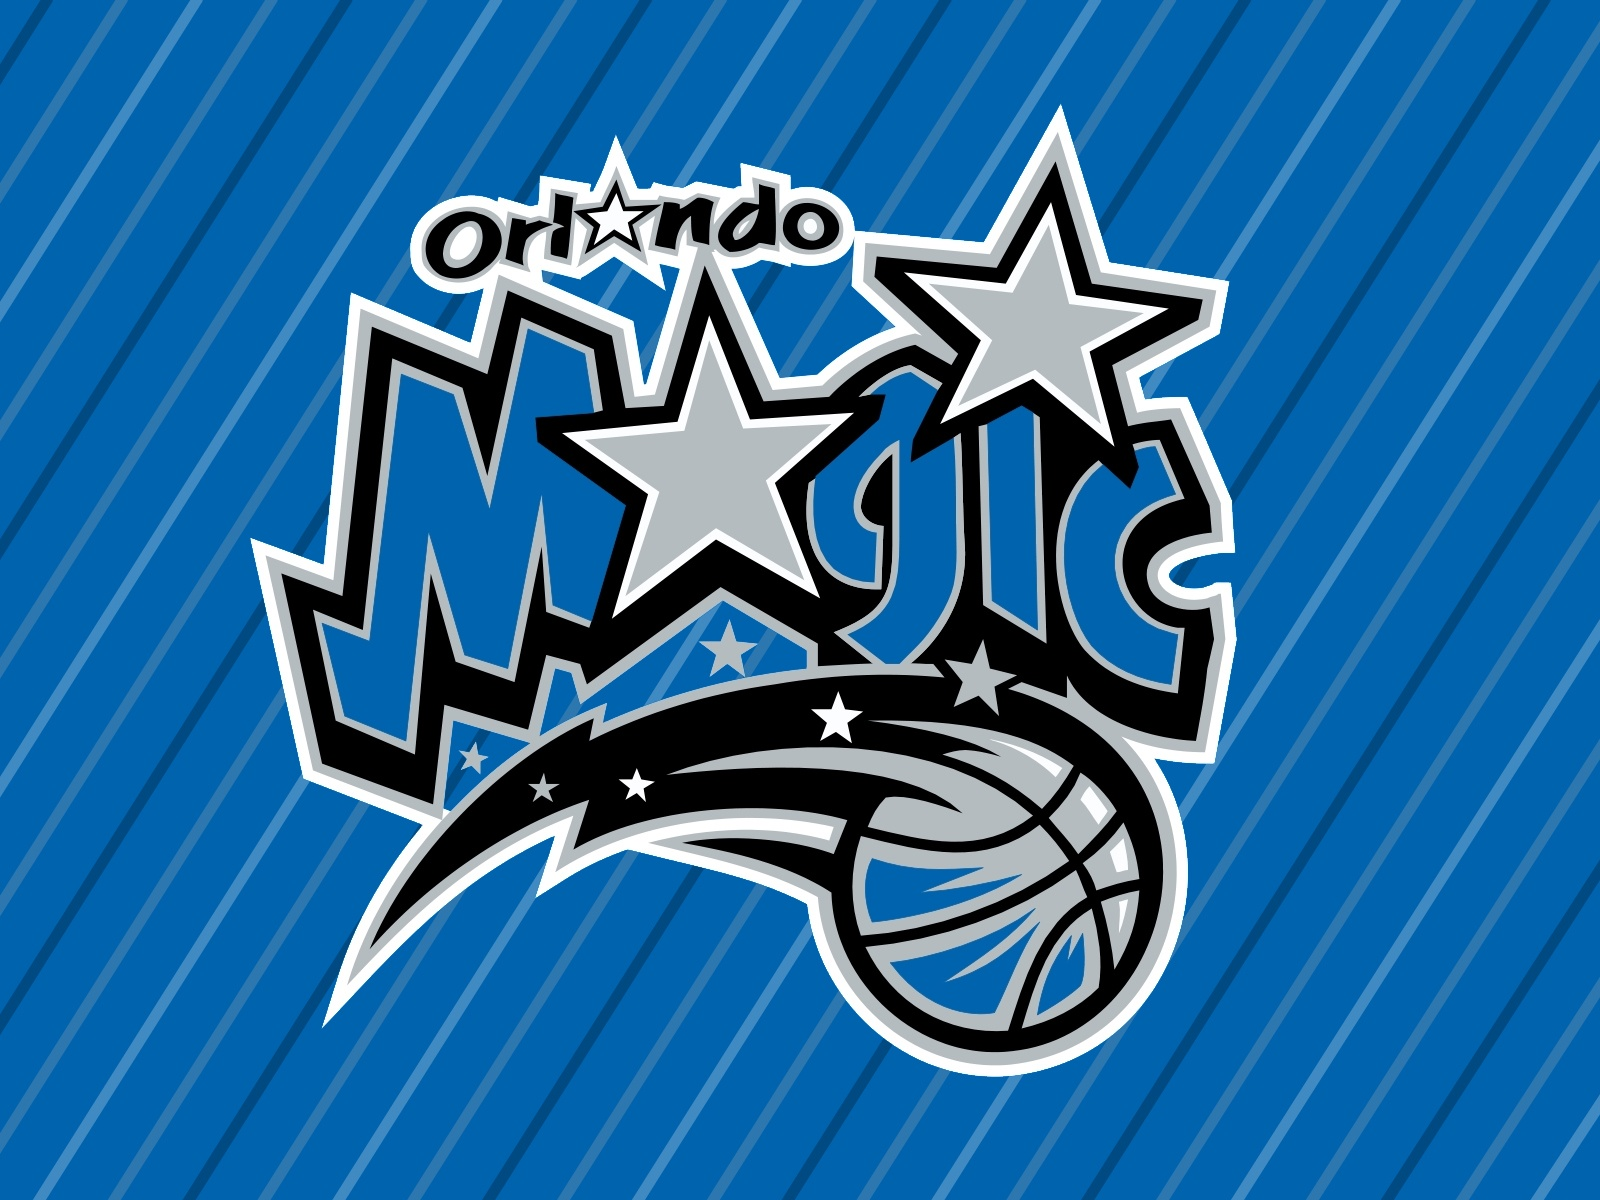 Orlando Magic Wallpaper - Orlando Magic Logo - 1600x1200 - D